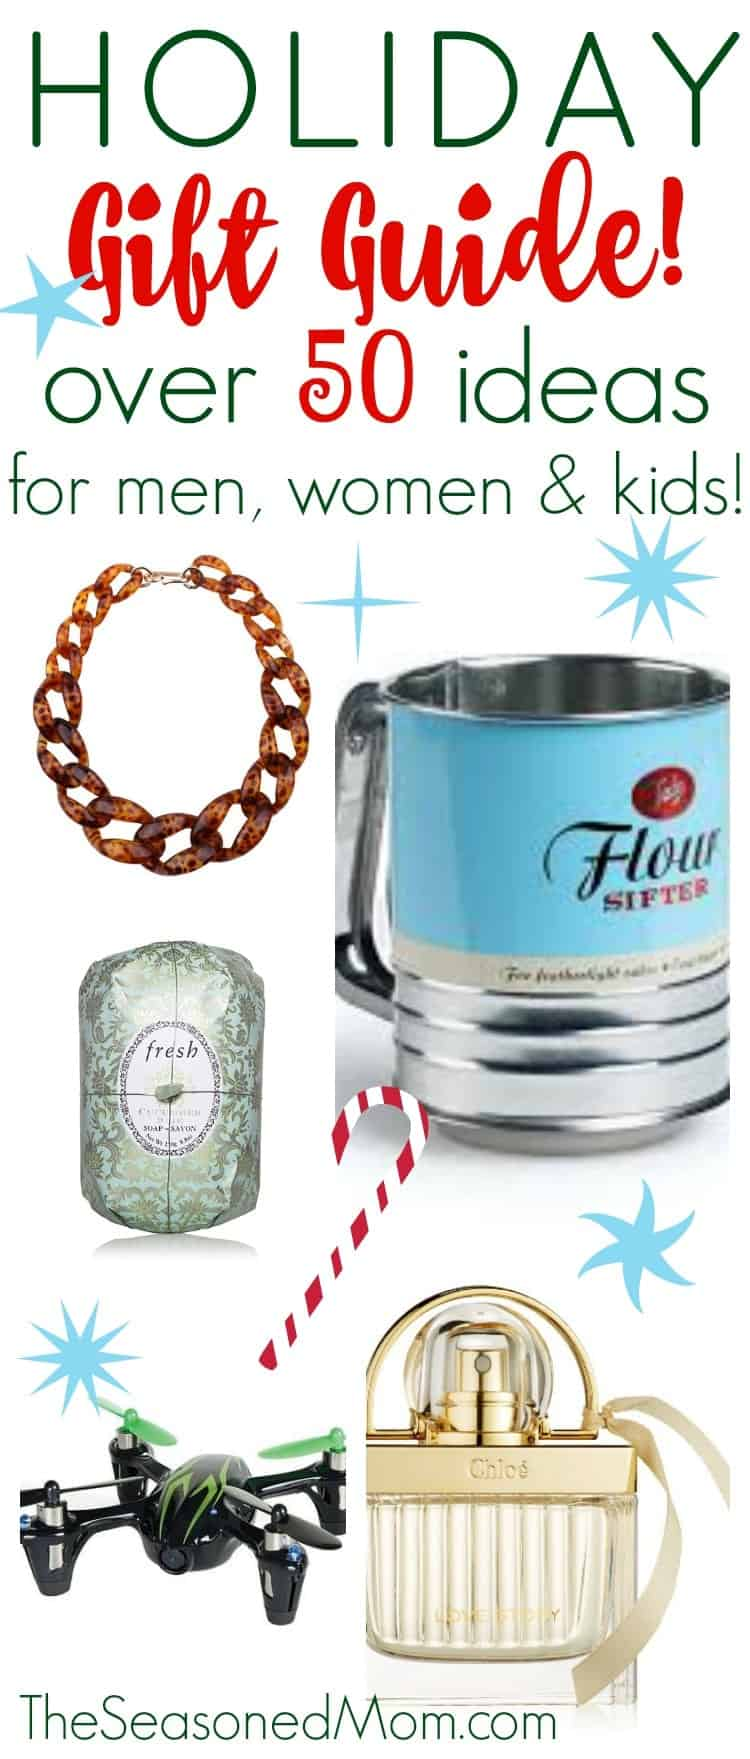 This Ultimate Holiday Gift Guide 2015 has over 50 Christmas gift ideas for men, women & kids!